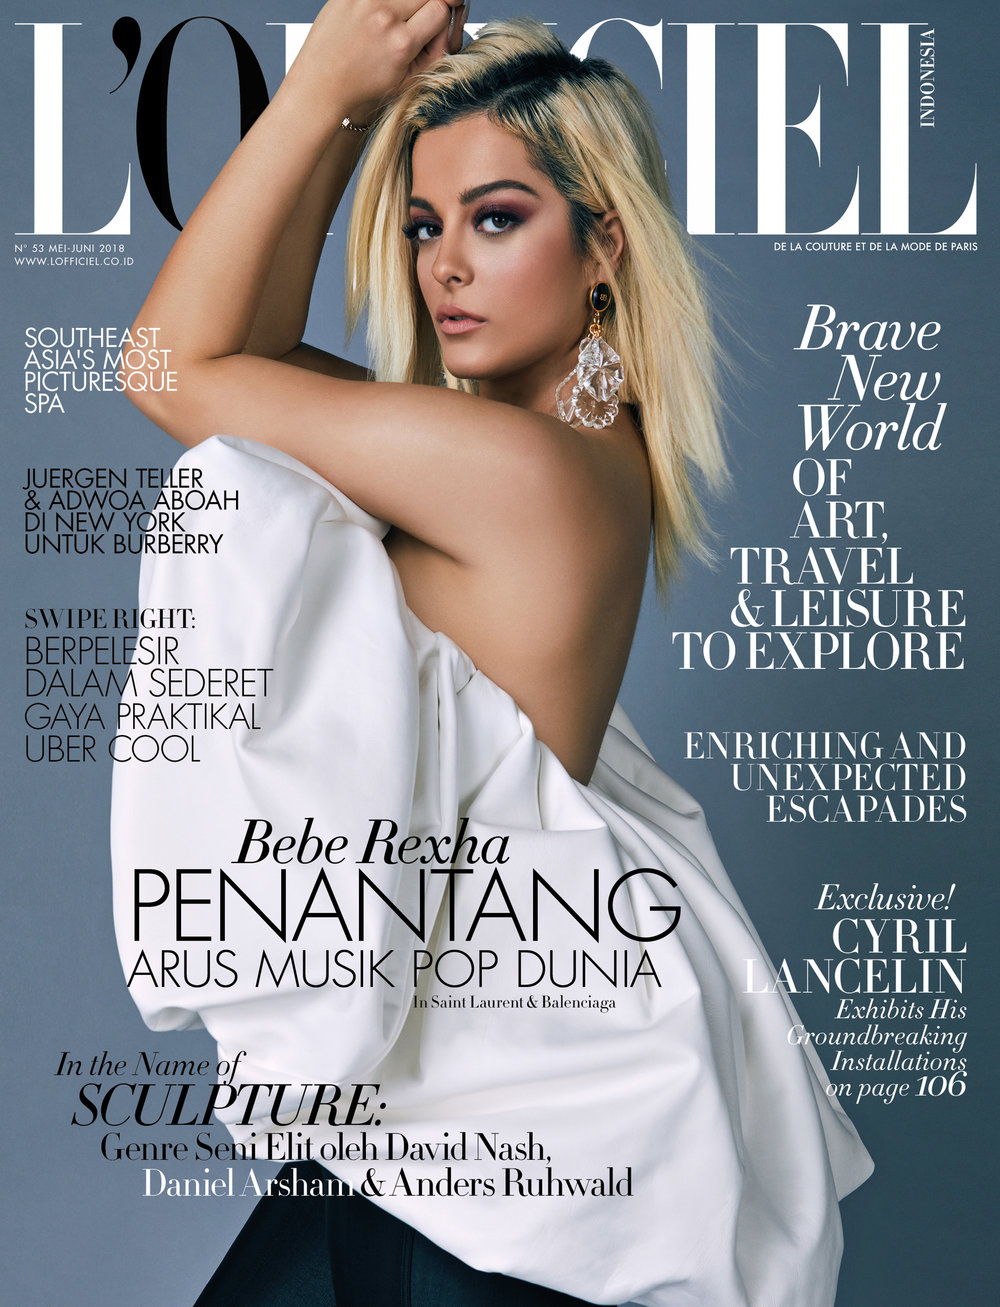 001 Lofficiel 53 - COVER jadi Hires.jpg